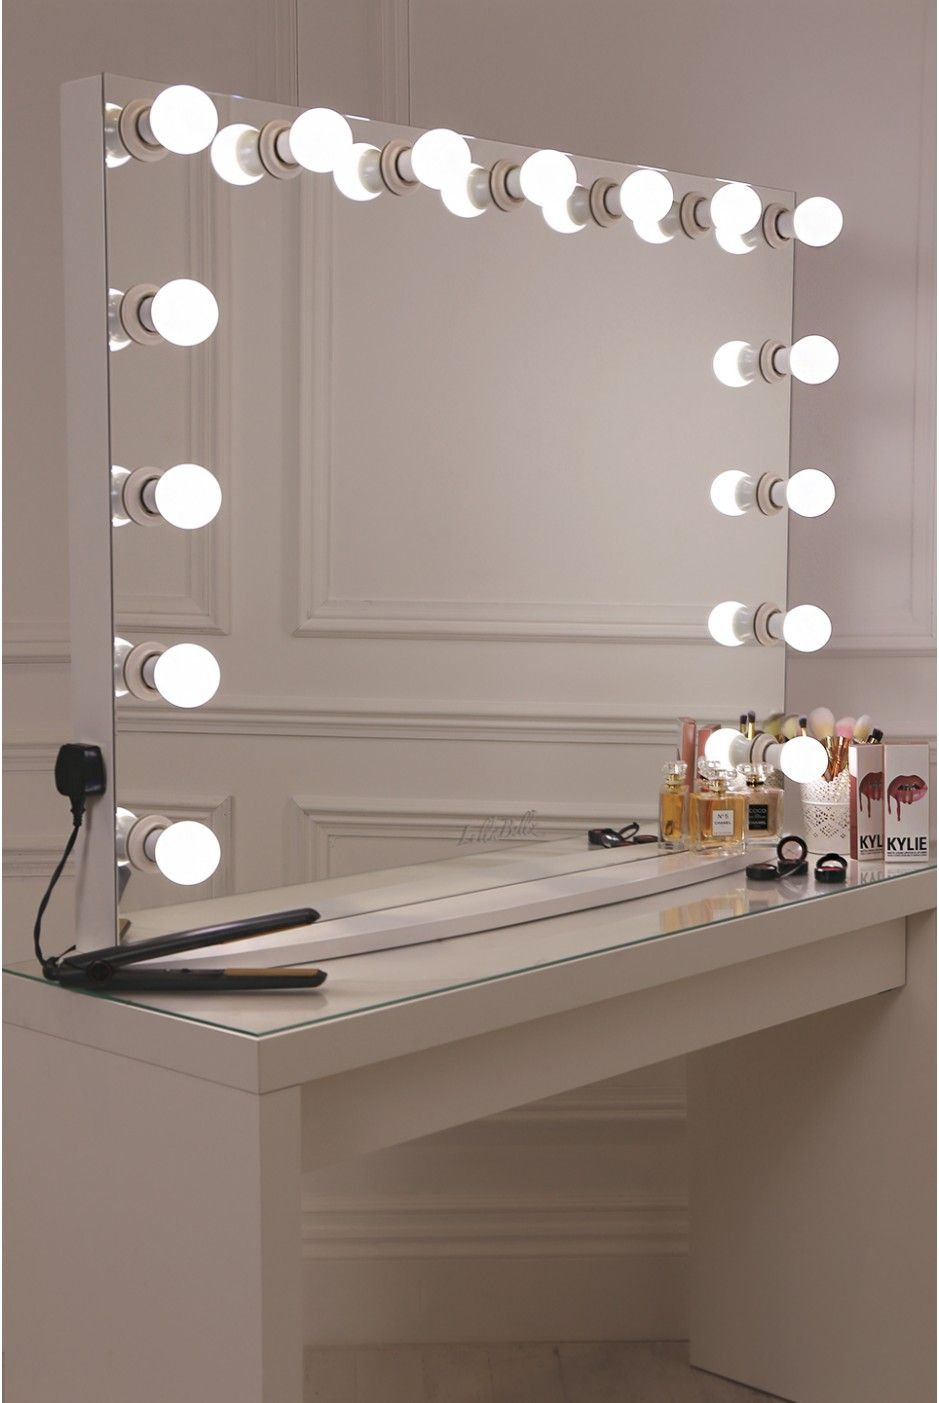 square vanity mirror with lights. 17 DIY Vanity Mirror Ideas to Make Your Room More Beautiful  Diy